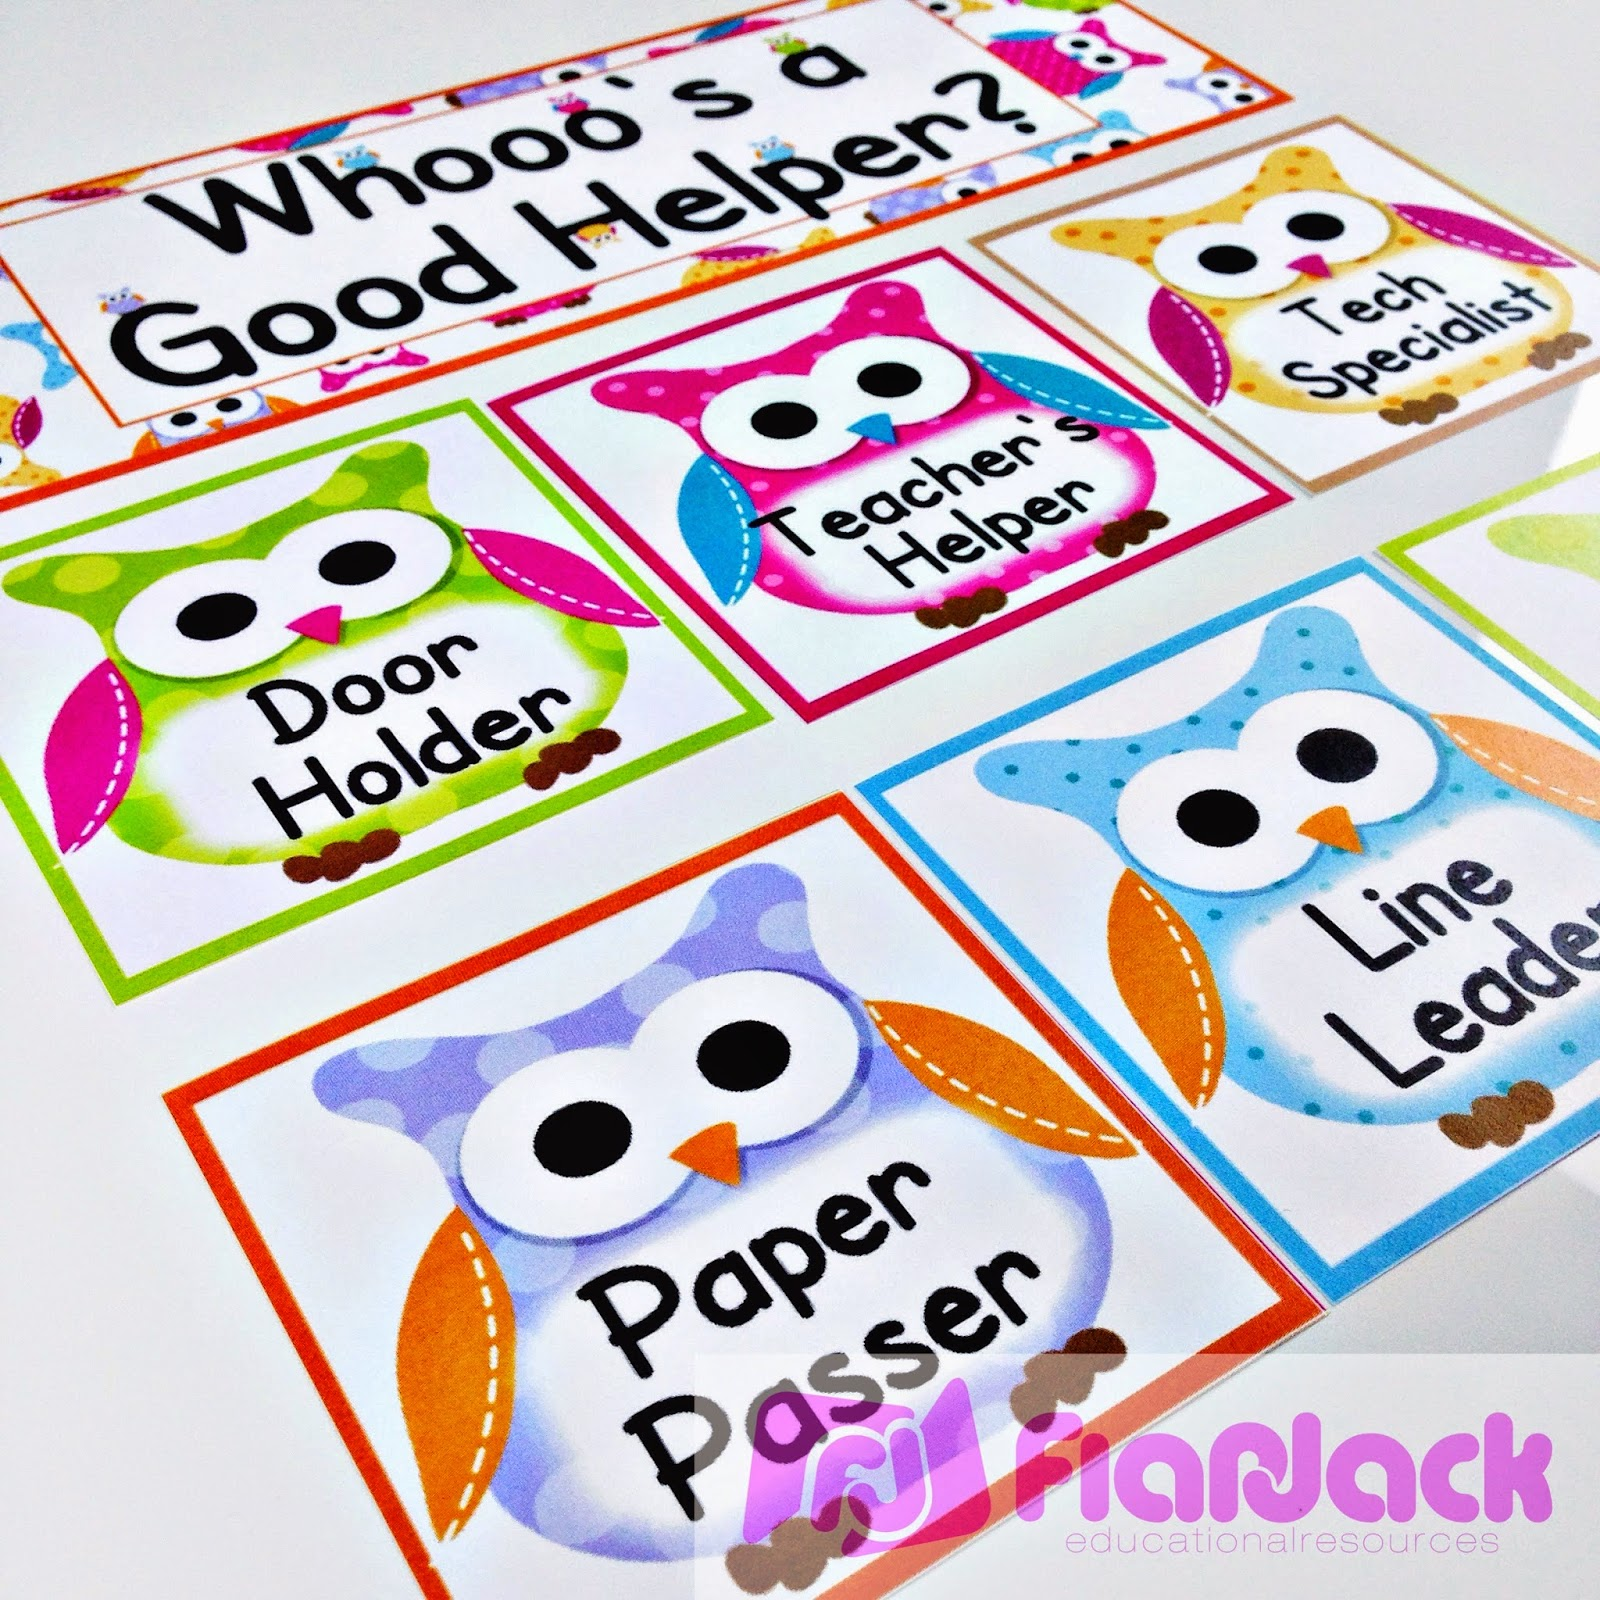 http://www.teacherspayteachers.com/Product/Owl-Themed-Classroom-Materials-Pack-255836